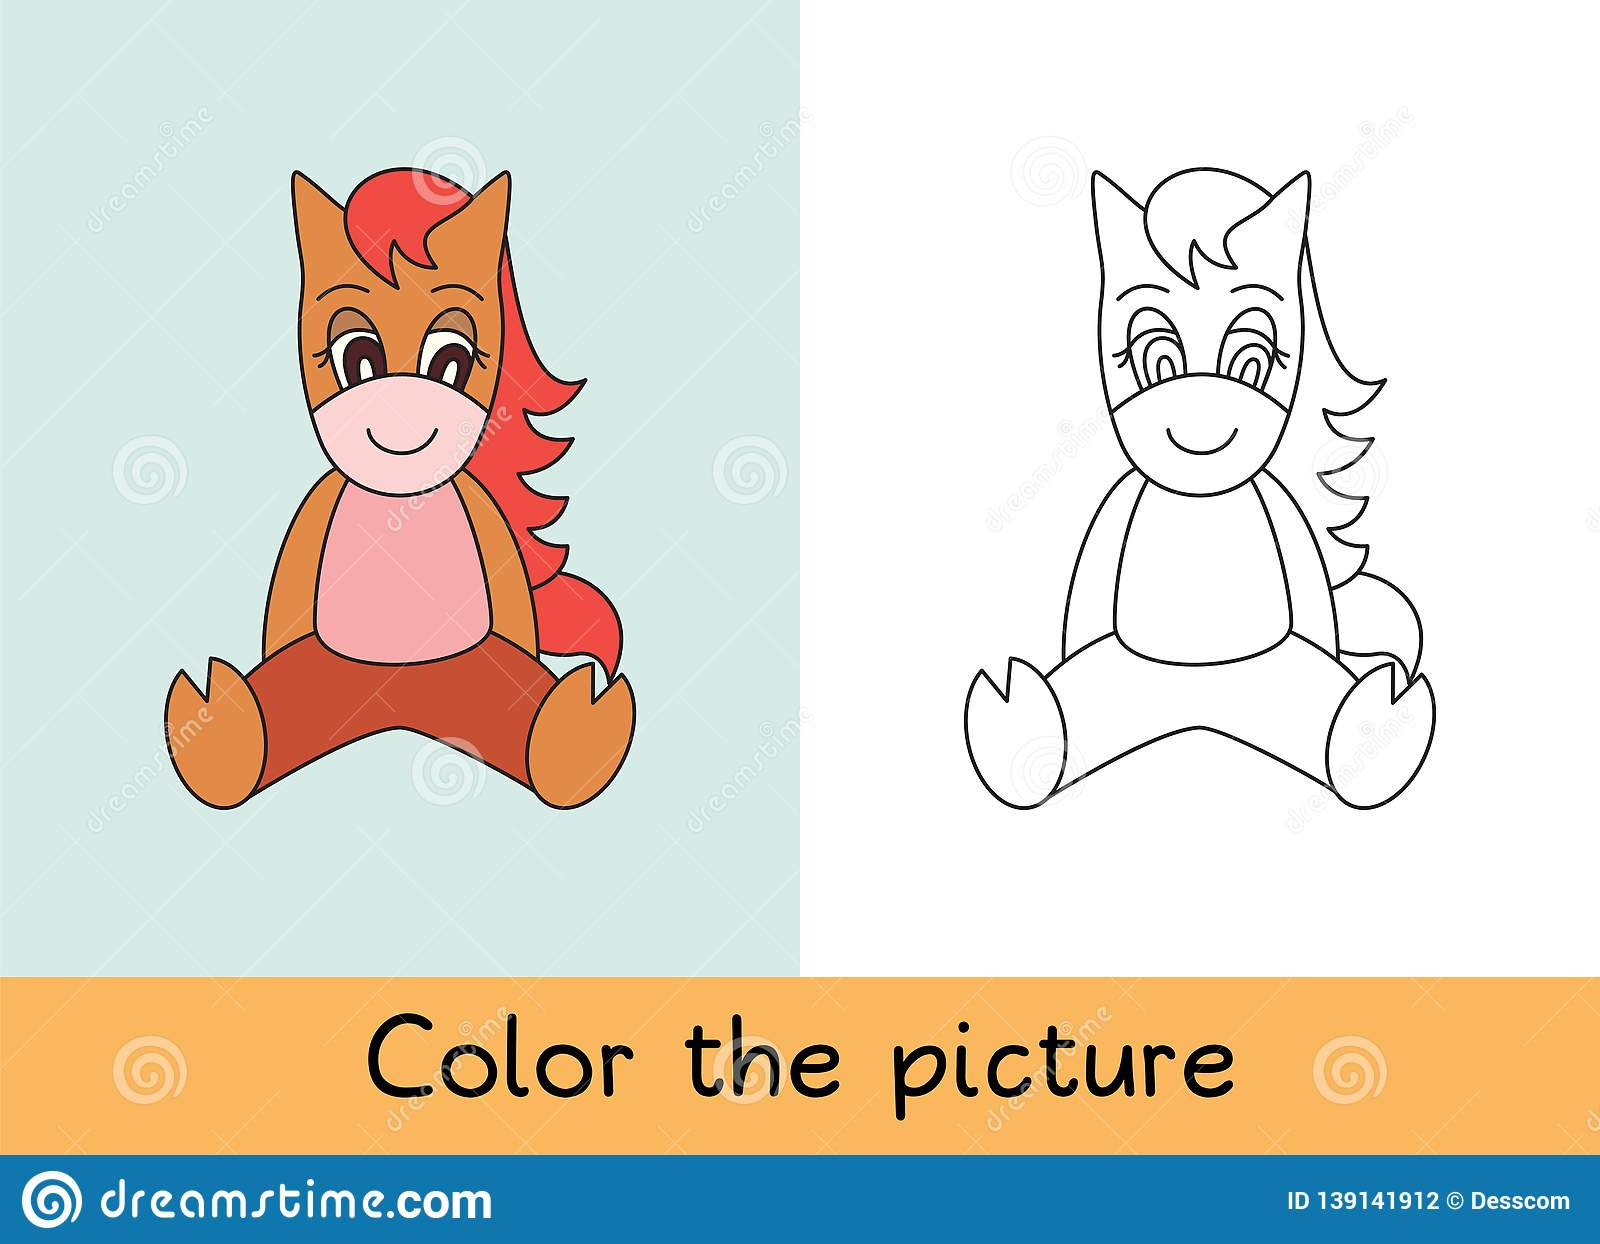 Coloring book. Horse. Cartoon animall. Kids game. Color picture. Learning by playing. Task for children